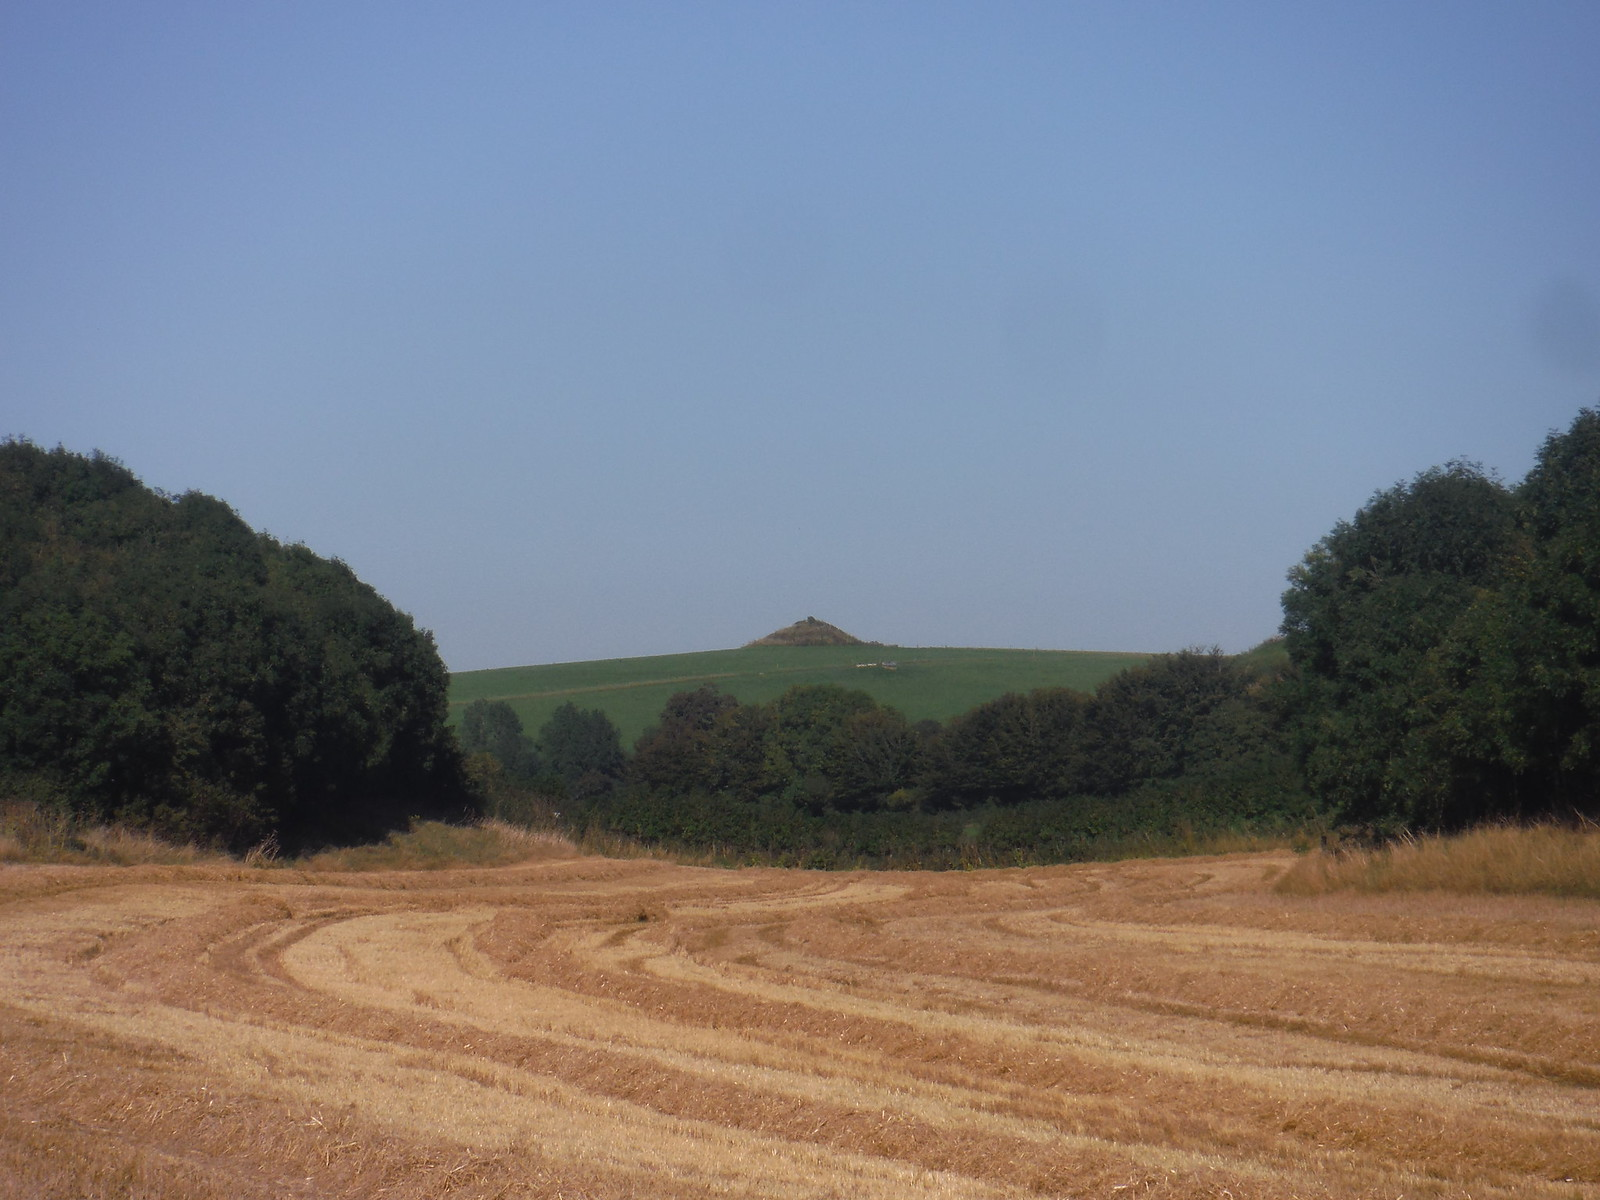 Clandon Barrow from Grove Hill Bottom SWC Walk 275 Dorchester South Circular or to Portesham